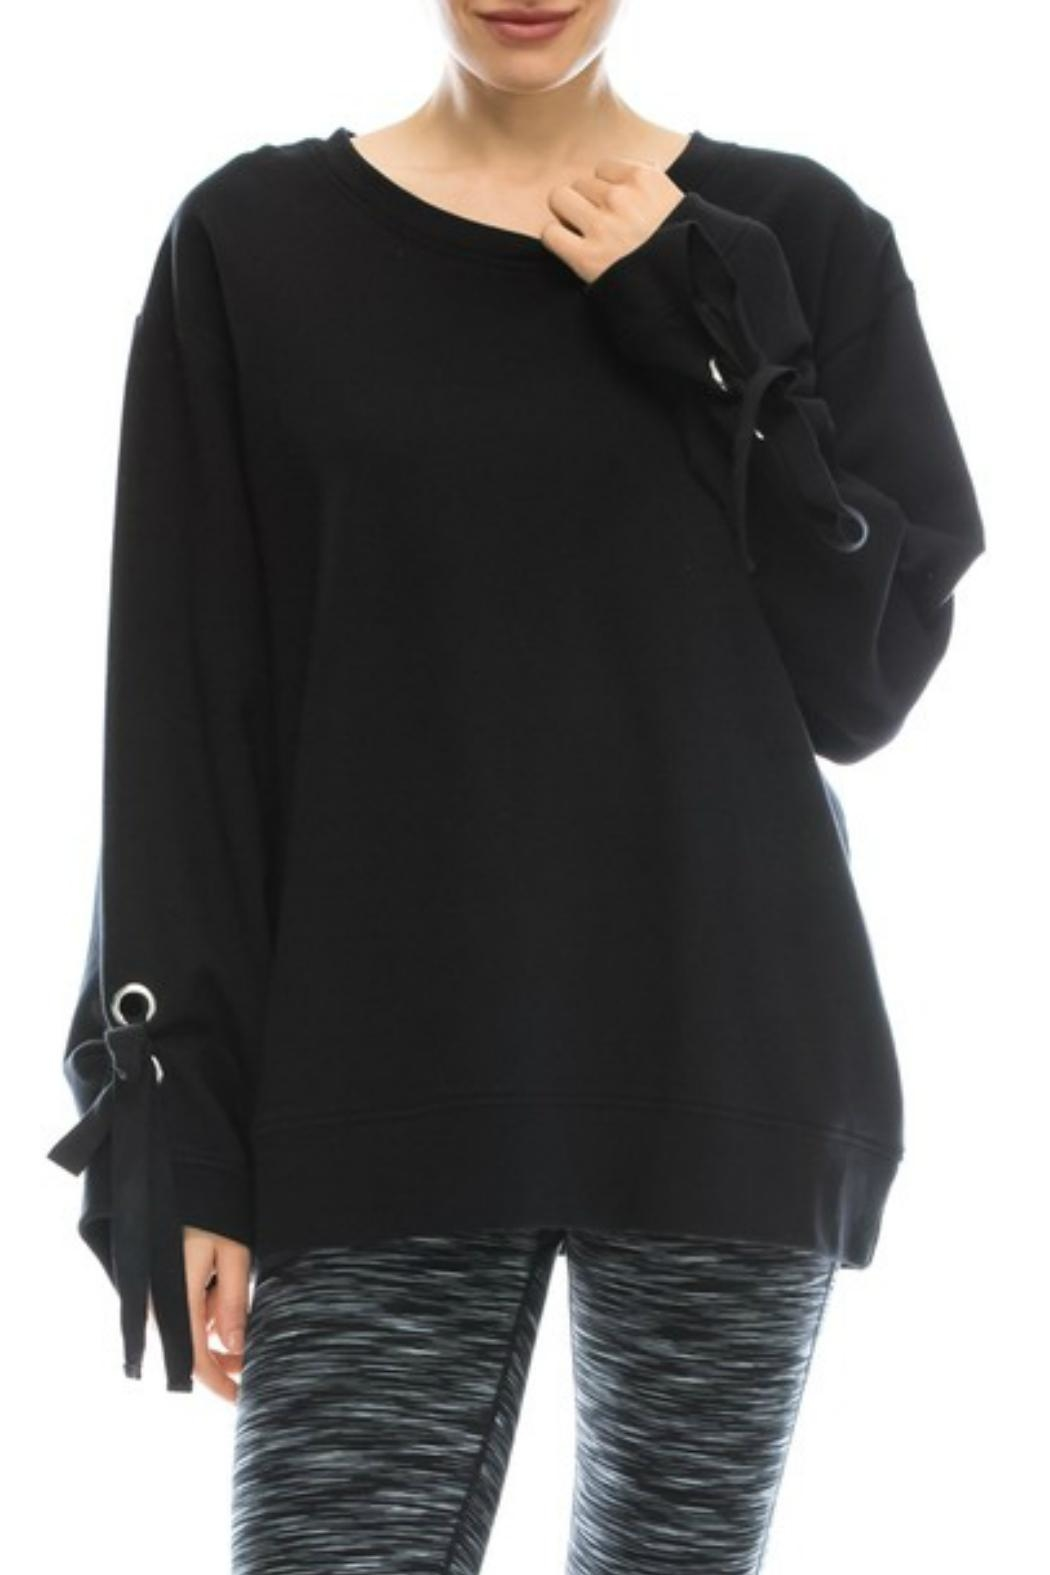 Mono B Comfy Black Sweatshirt - Main Image